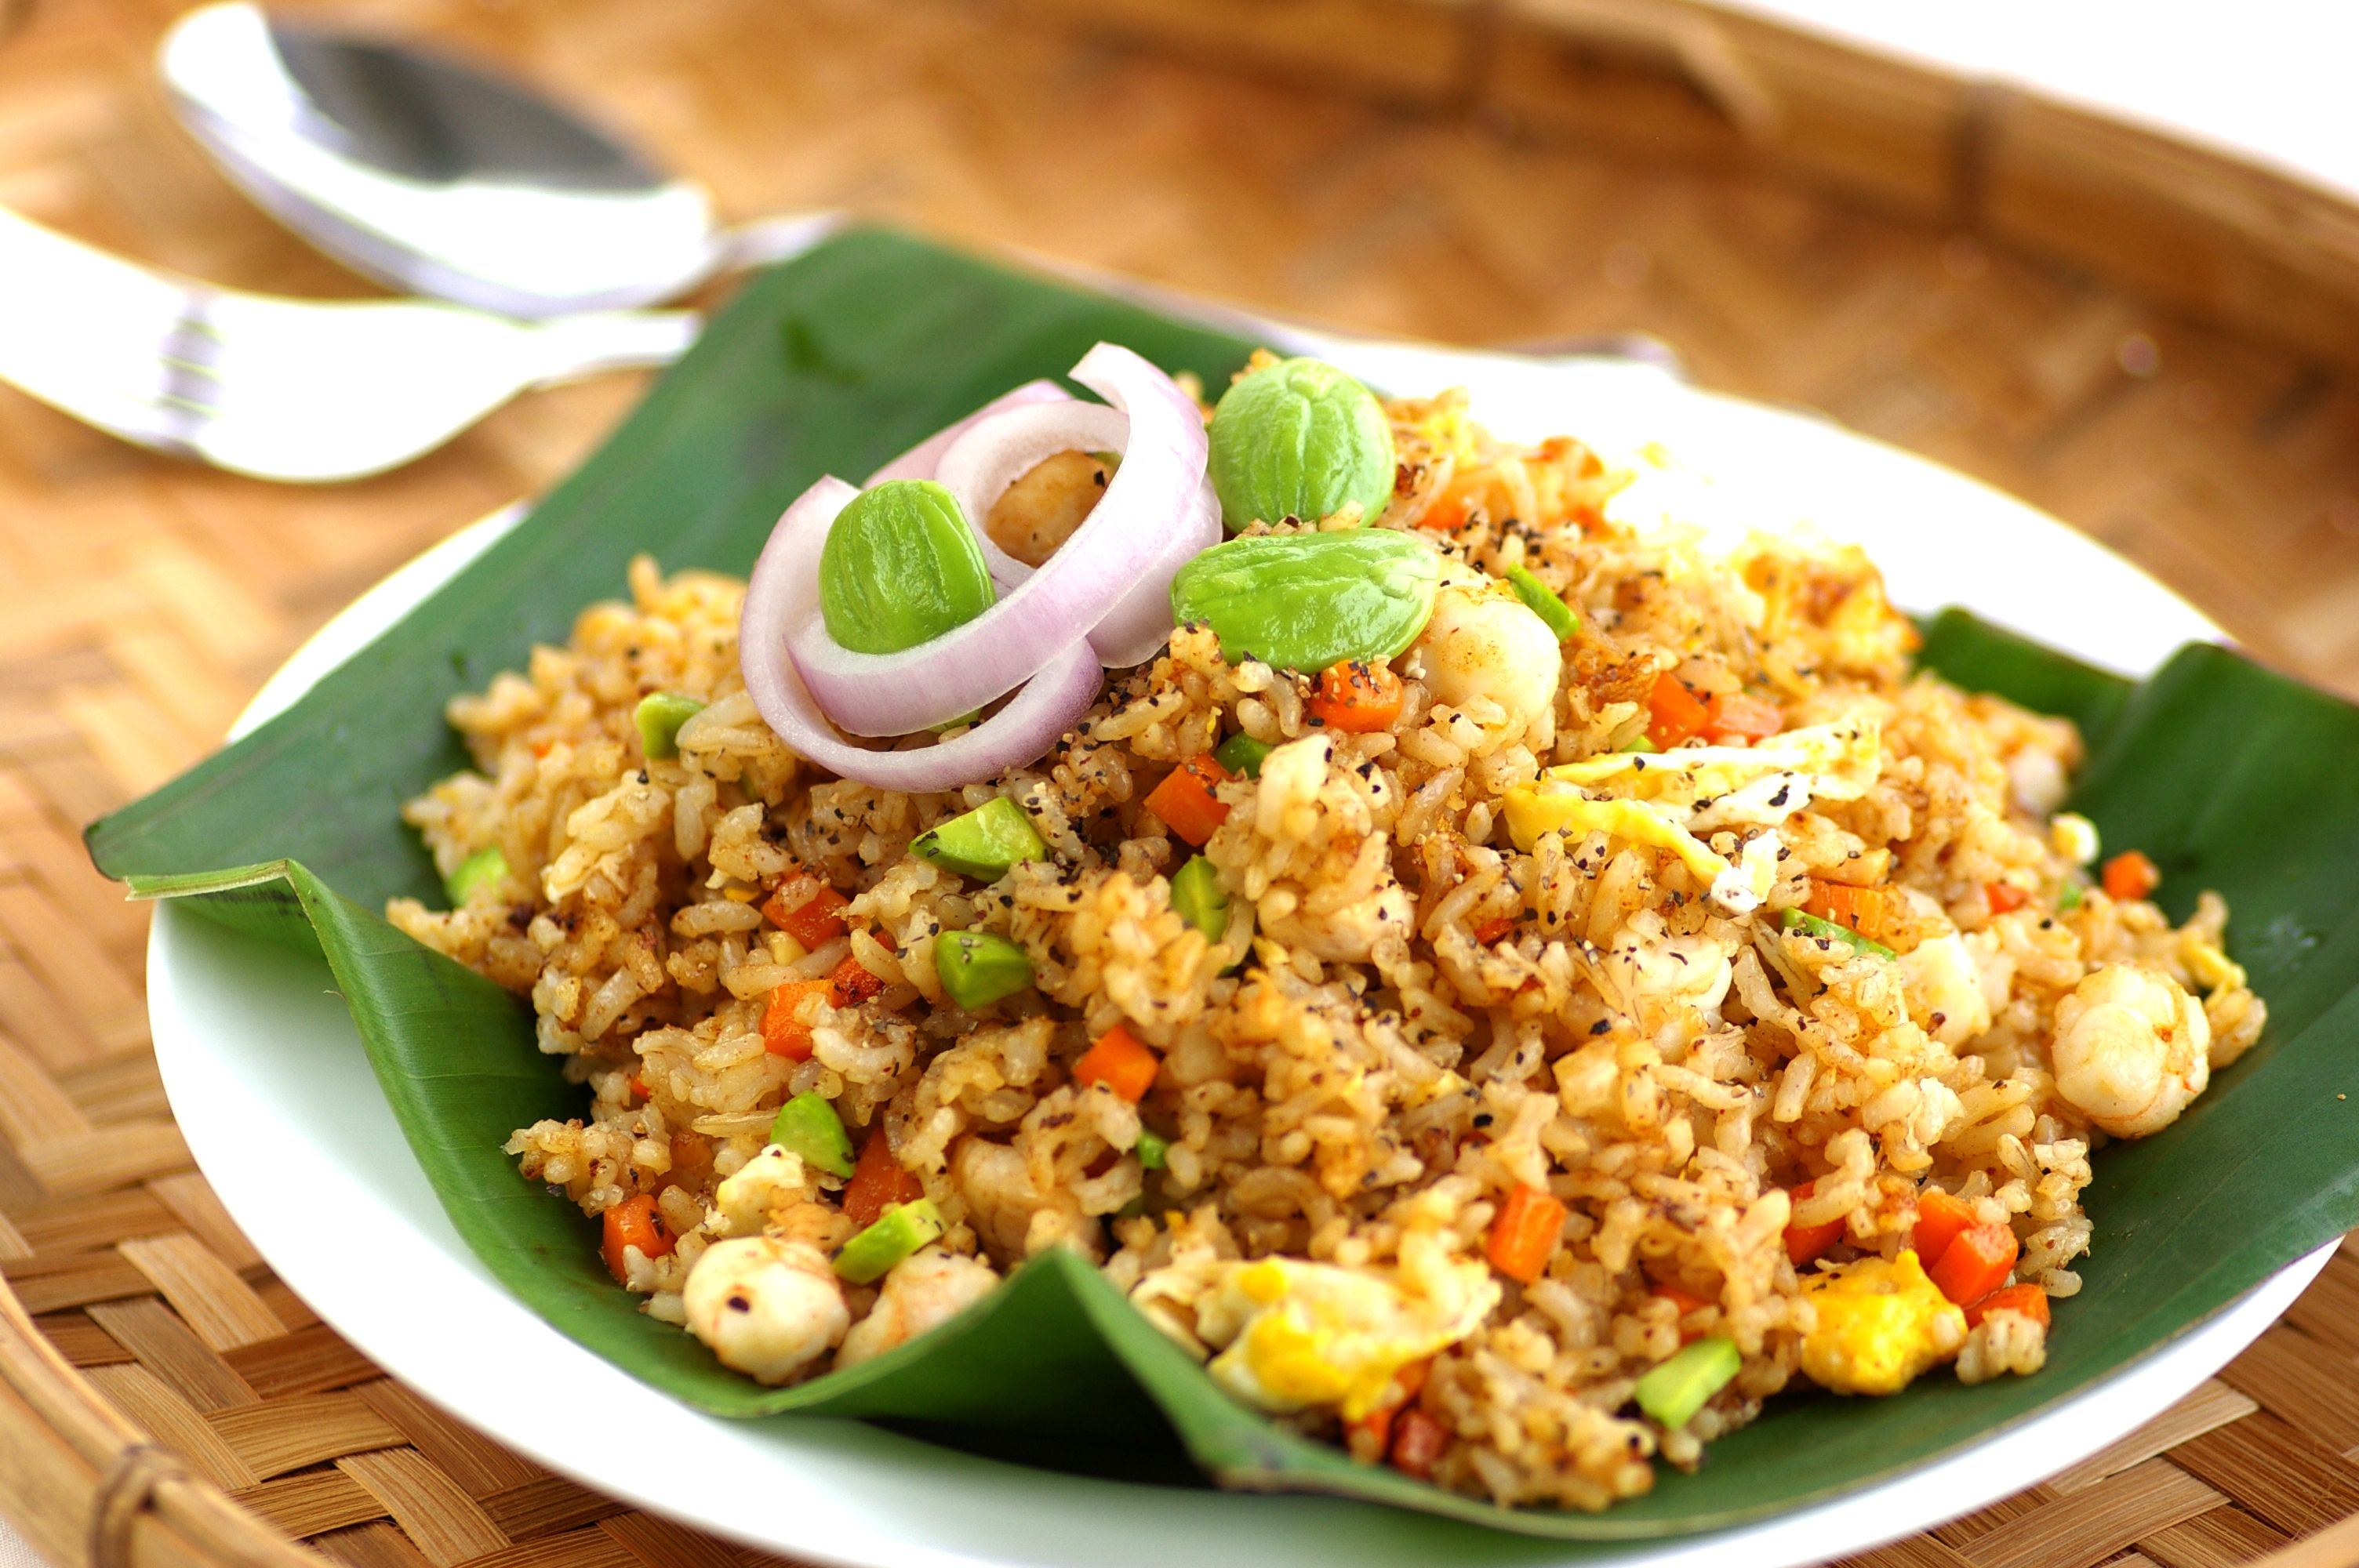 petai fried rice july 07 2014 by amy beh black pepper petai fried rice ...